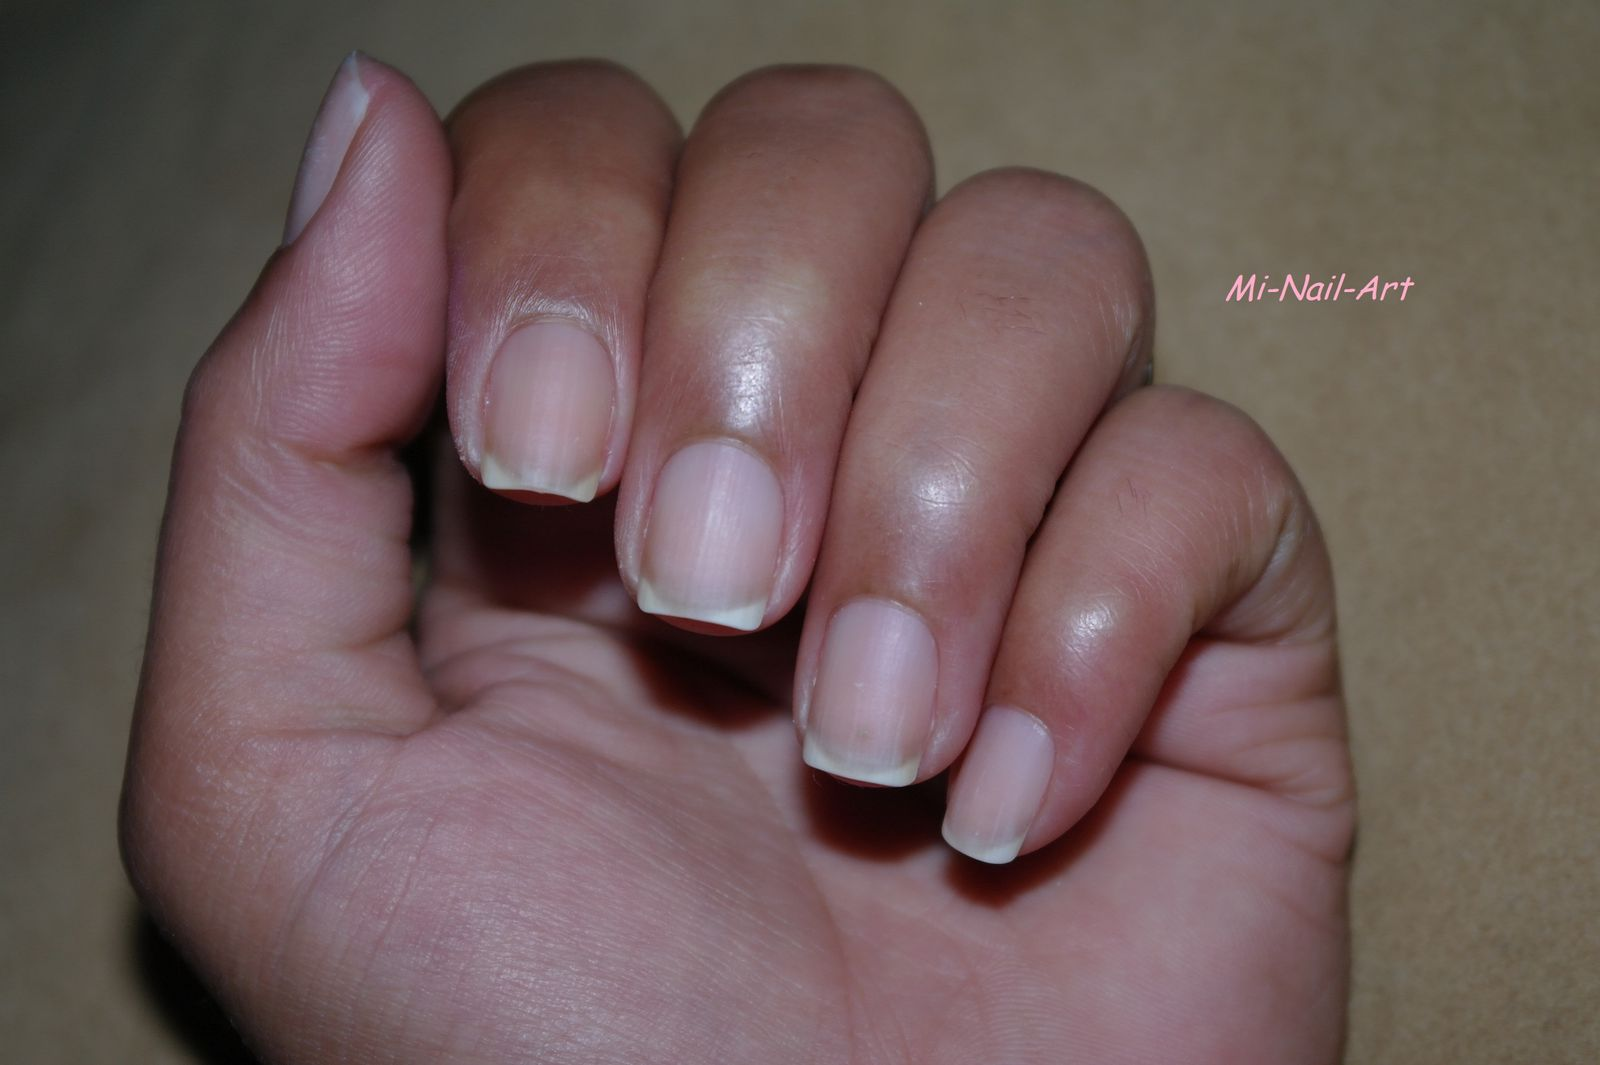 mes ongles avant apr s coupe recette maison fortifiant ongles mi nail art. Black Bedroom Furniture Sets. Home Design Ideas